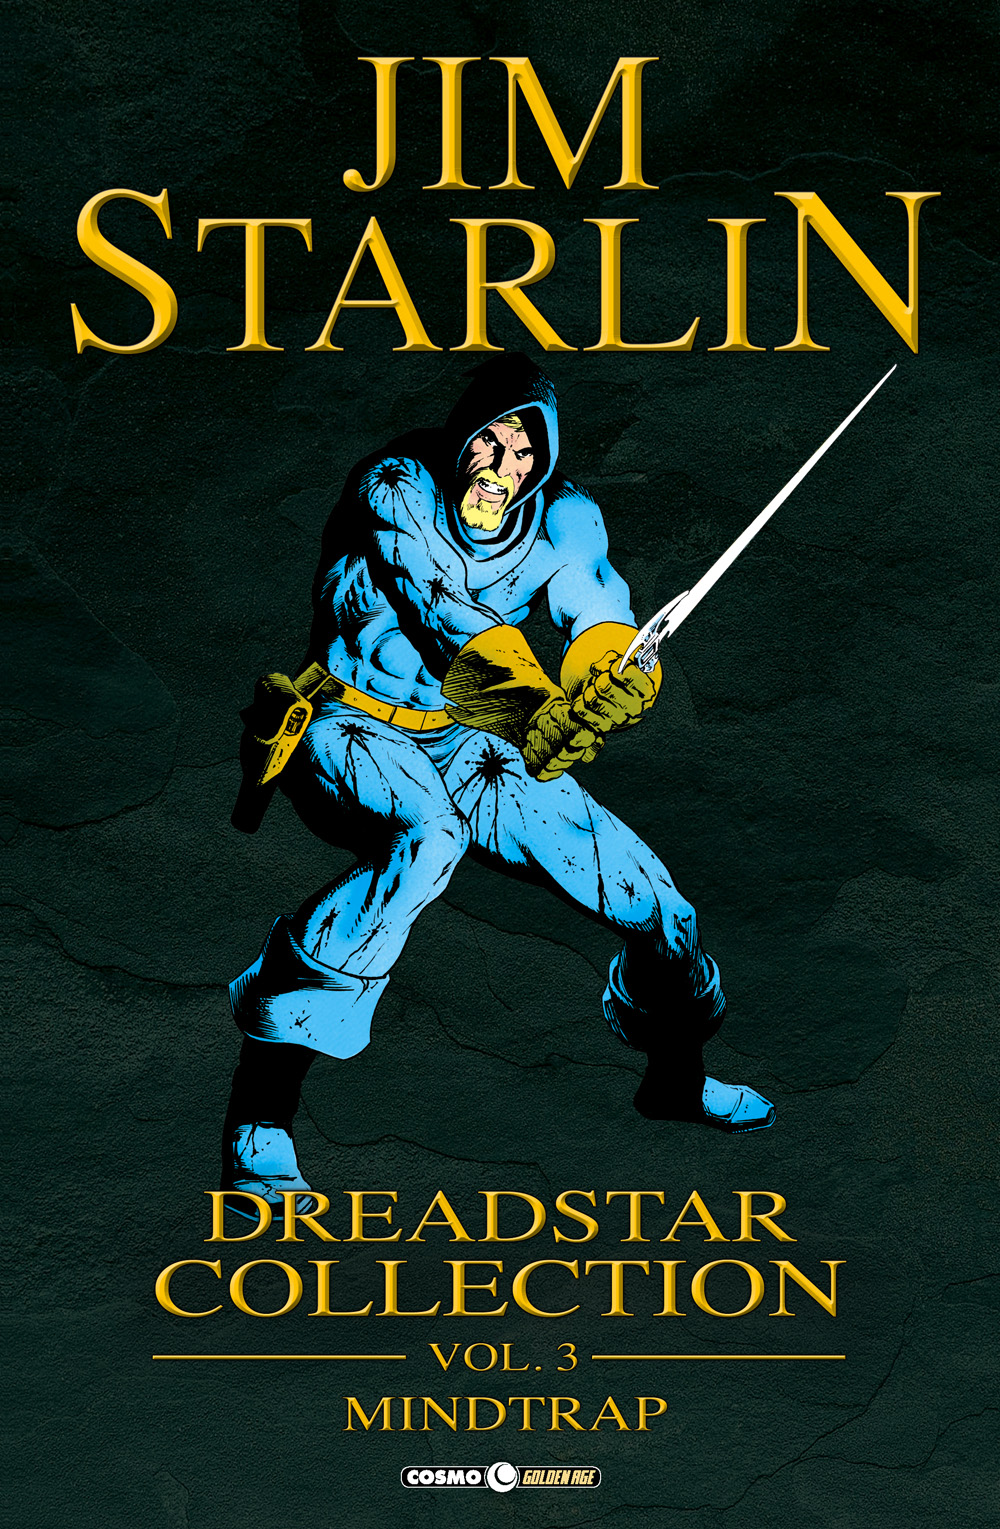 Dreadstar Collection vol. 3